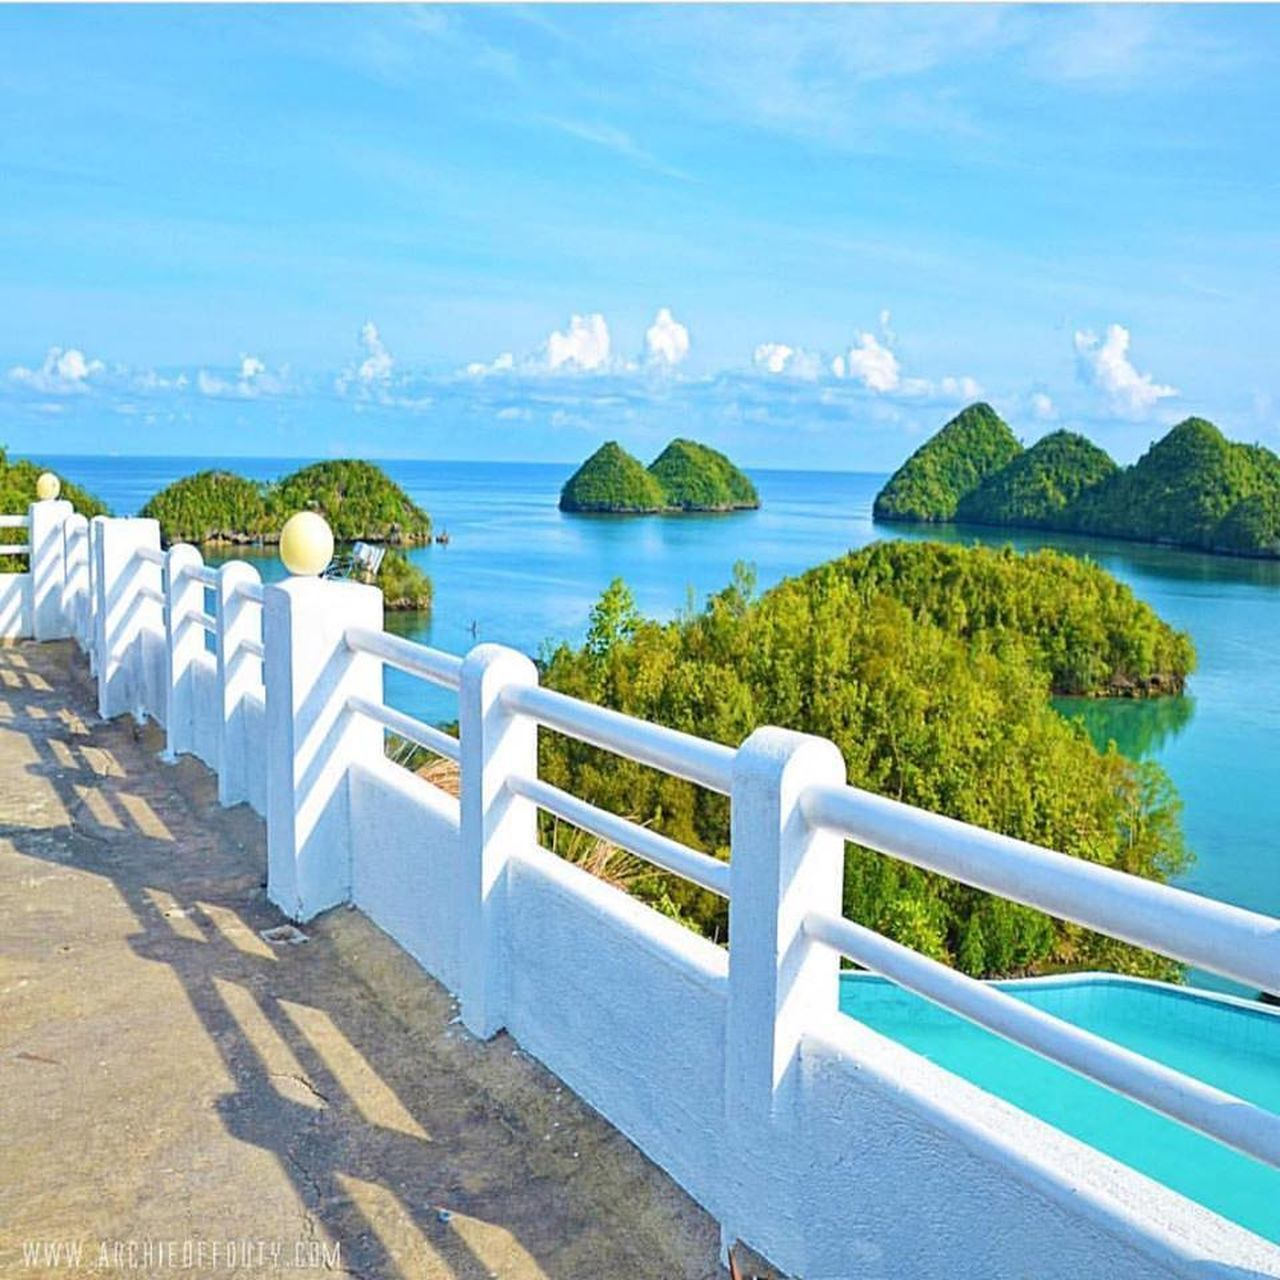 sea, railing, steps and staircases, staircase, steps, scenics, sky, horizon over water, high angle view, tranquility, sunlight, blue, tranquil scene, nature, beauty in nature, water, day, outdoors, no people